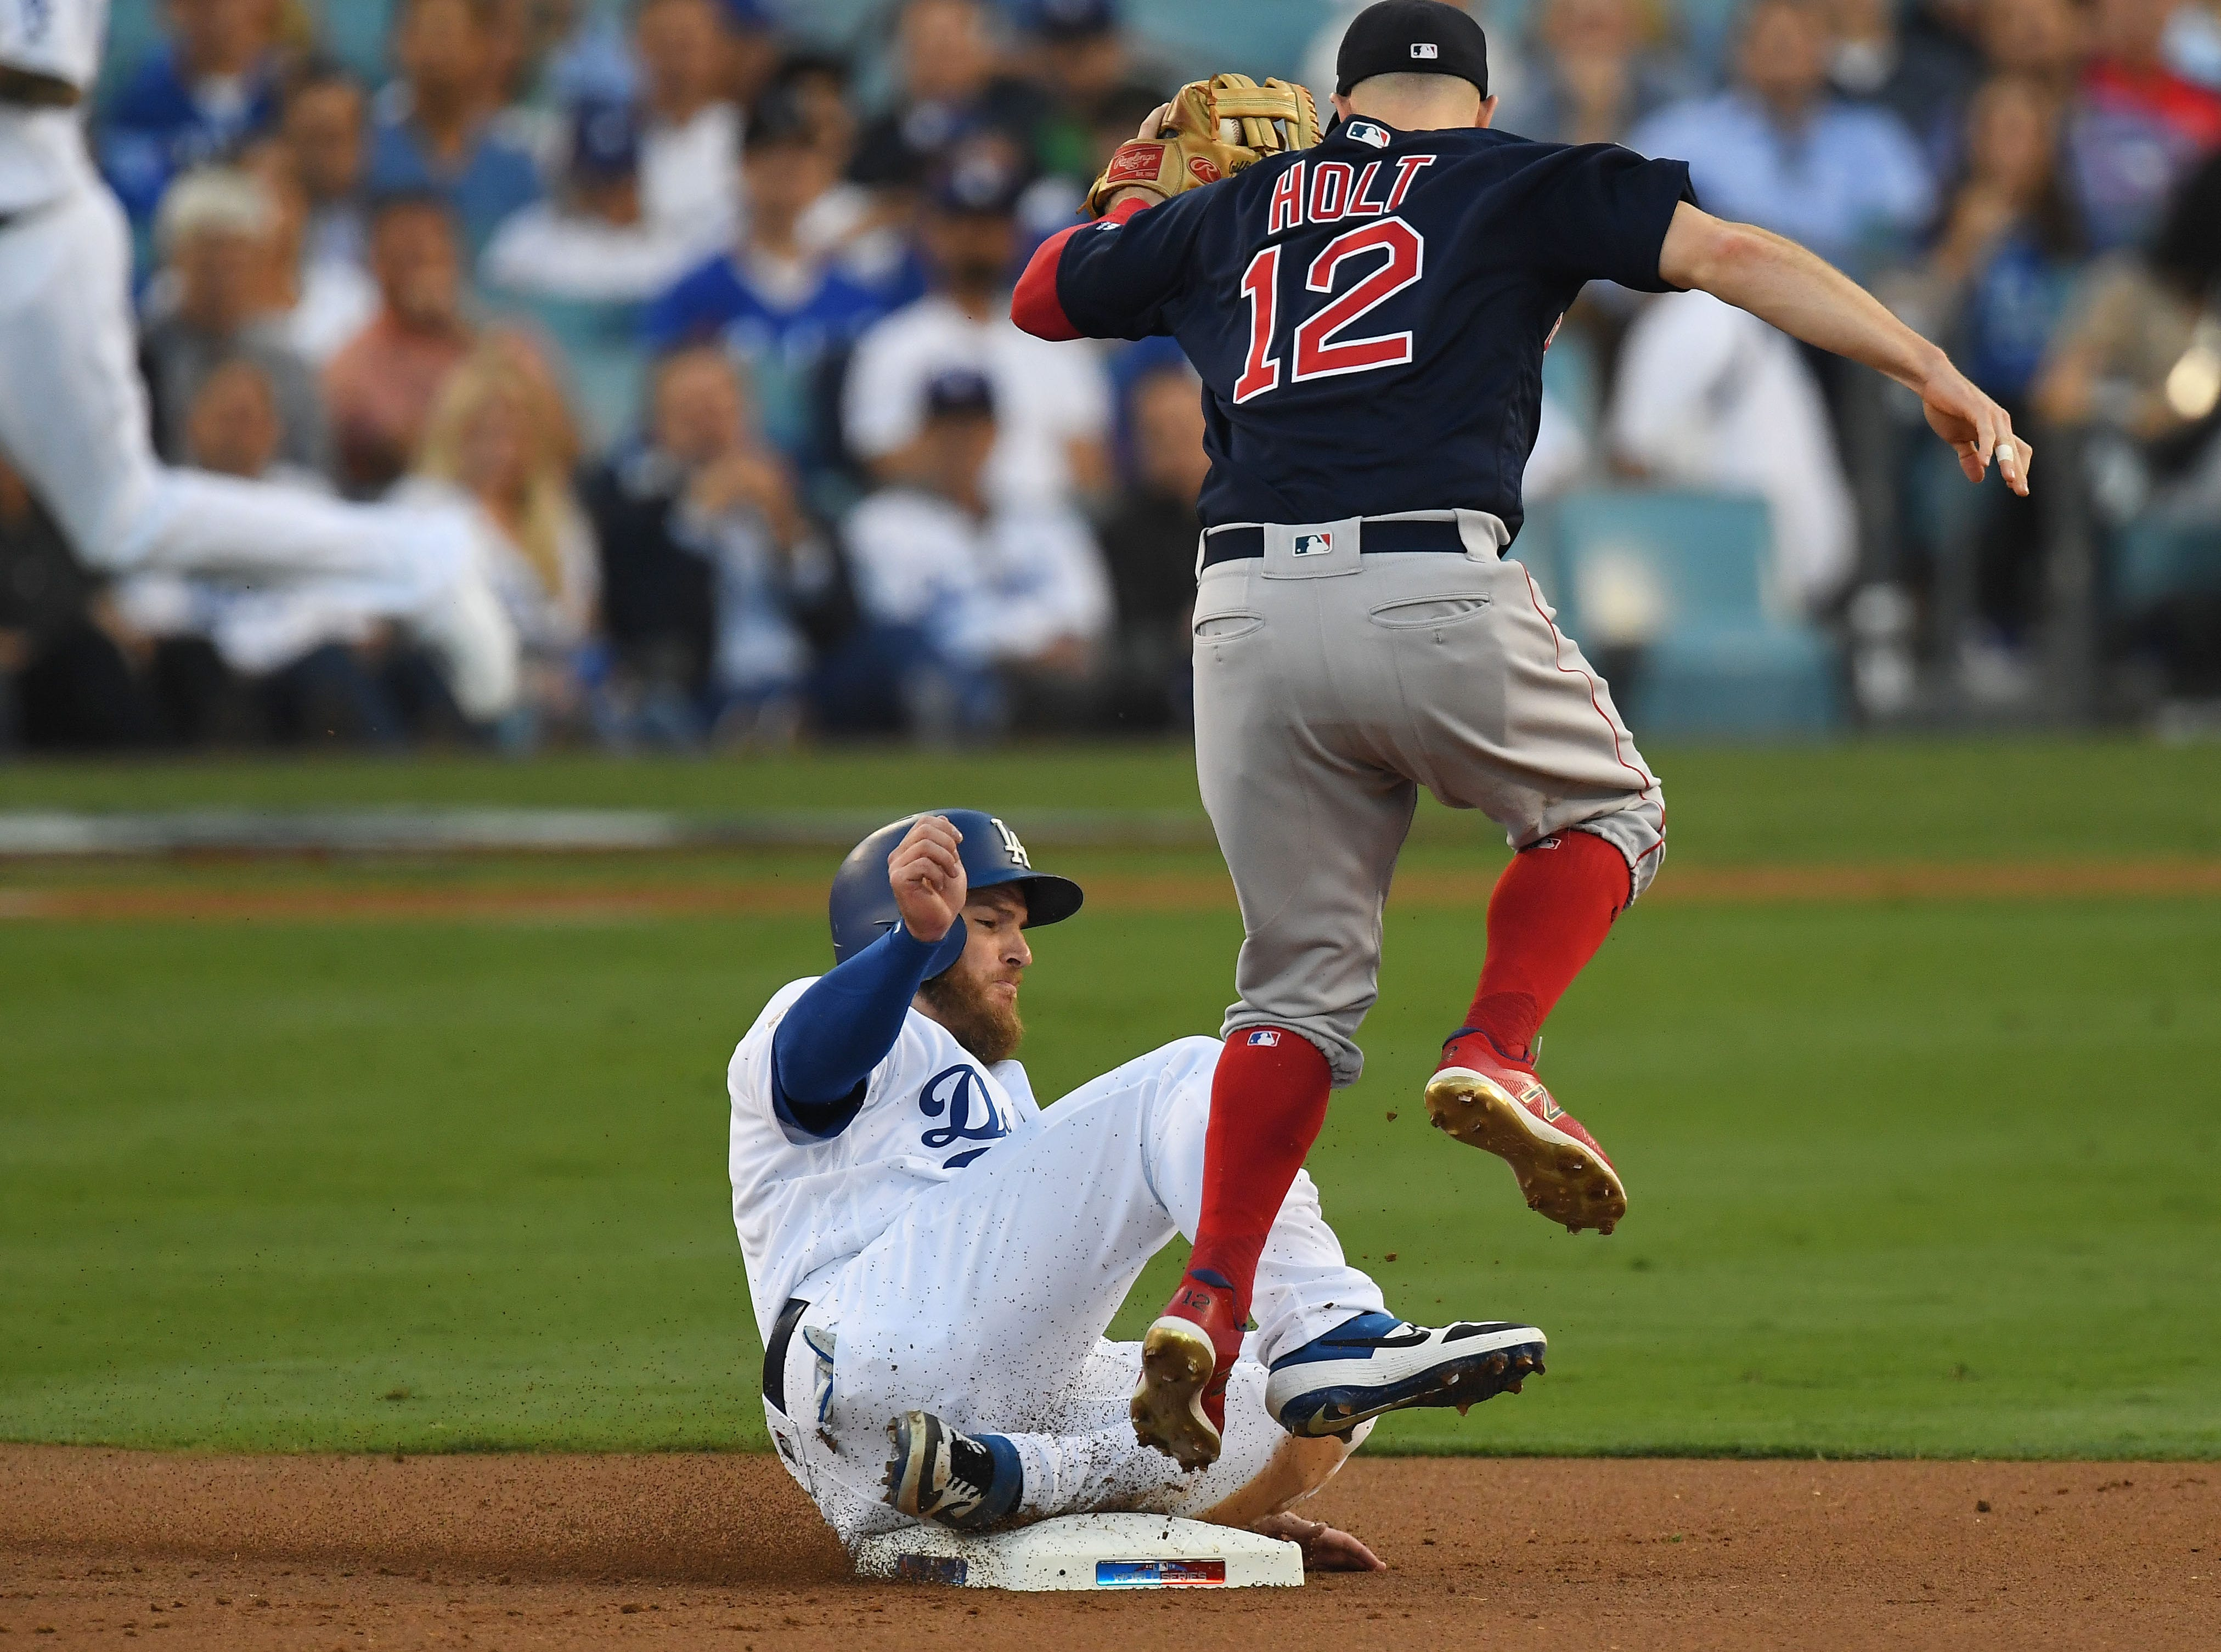 Game 3 at Dodger Stadium: Max Muncy is out at second as Bock Holt makes the play.